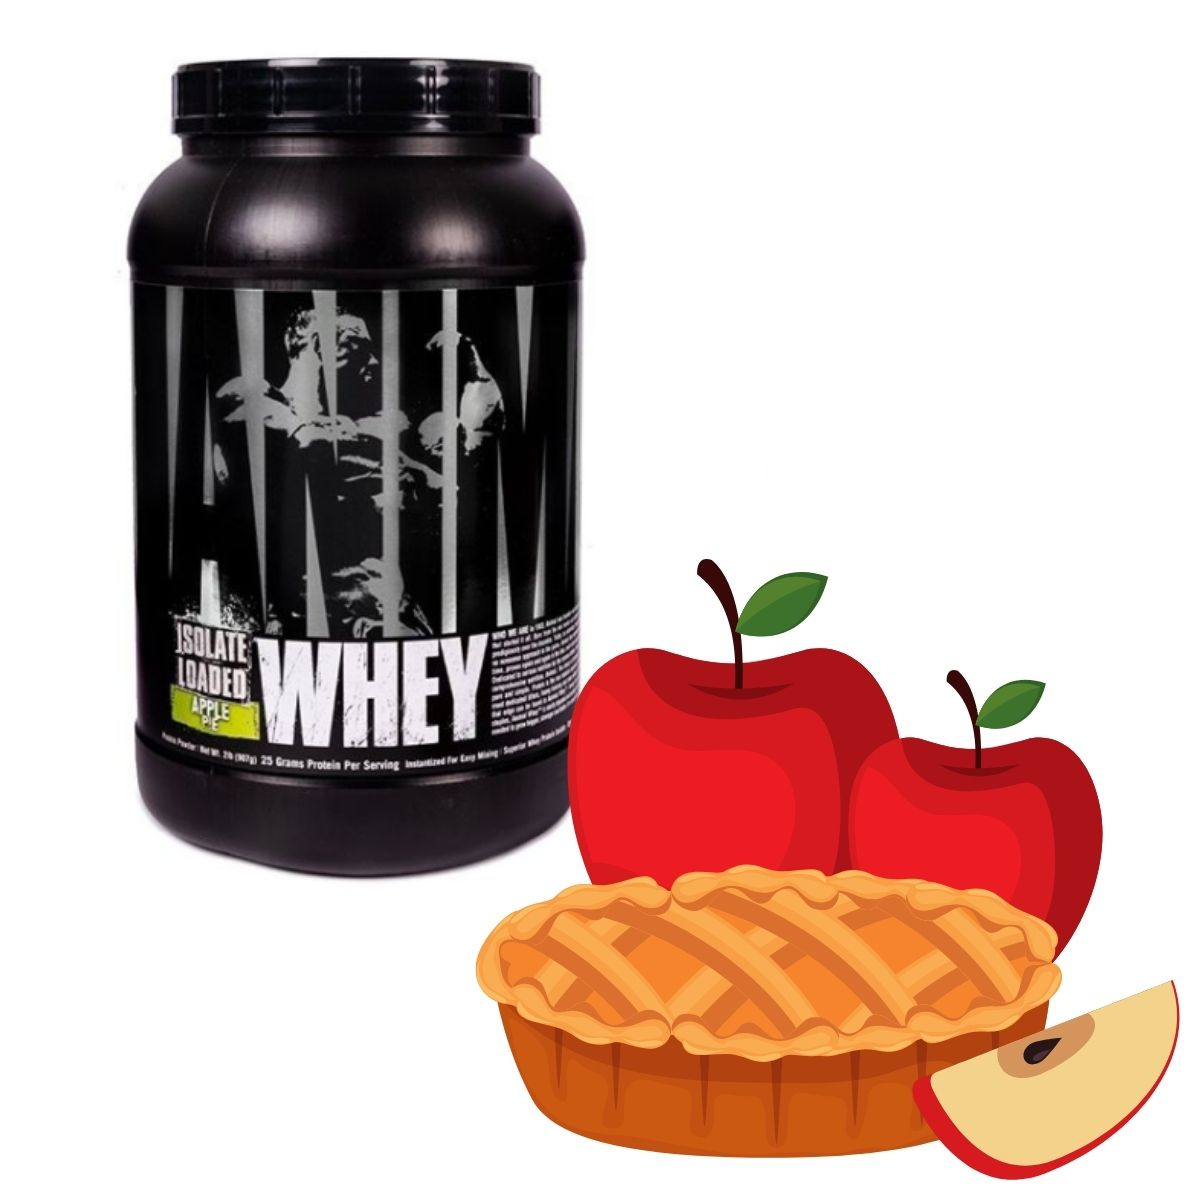 Animal Whey Gets a New Limited Edition Apple Pie Flavor for Fall